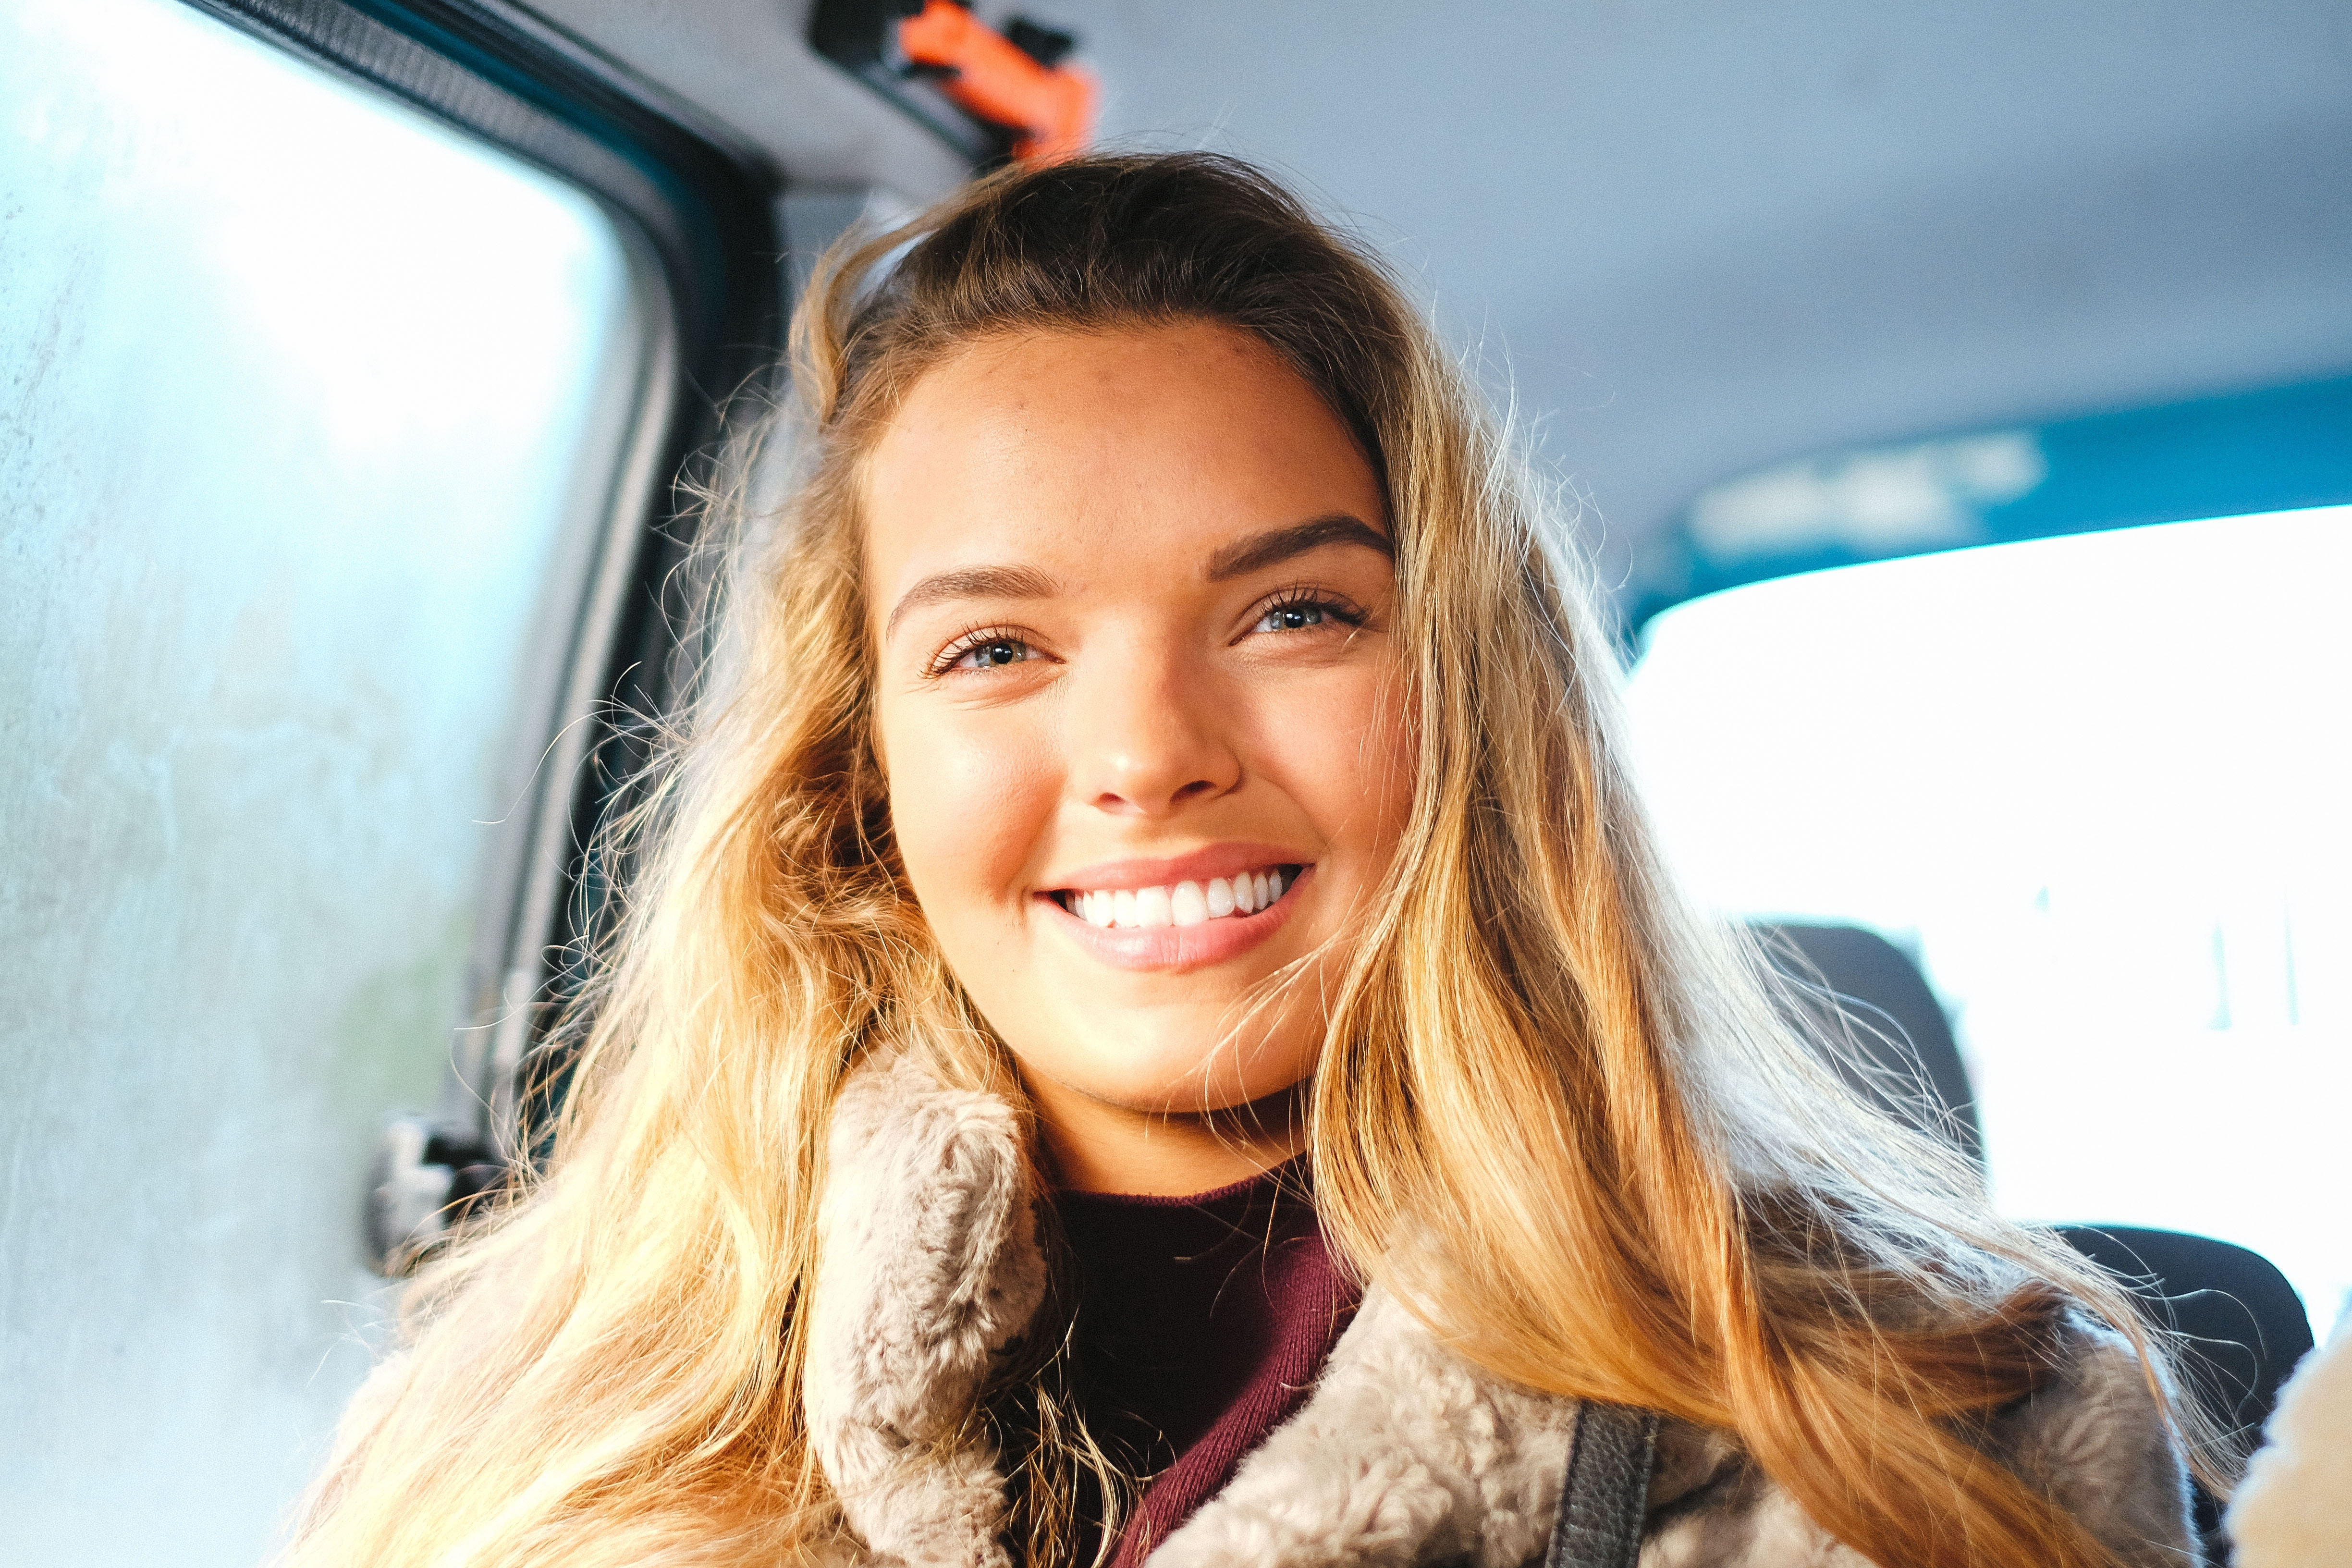 smiling woman sitting in vehicle